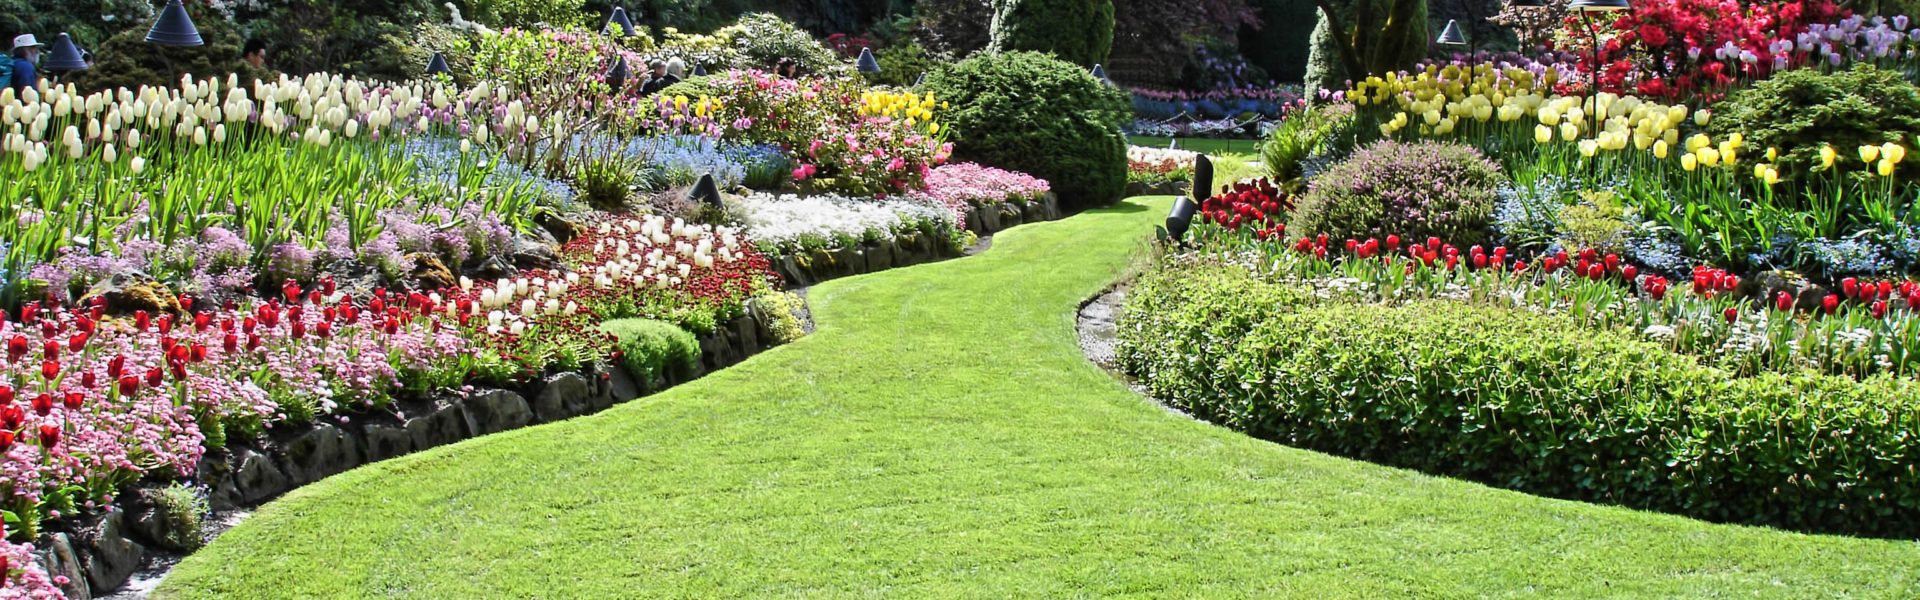 Synthetic Grass Has Proved Itself as The Best Option For Recreational Areas